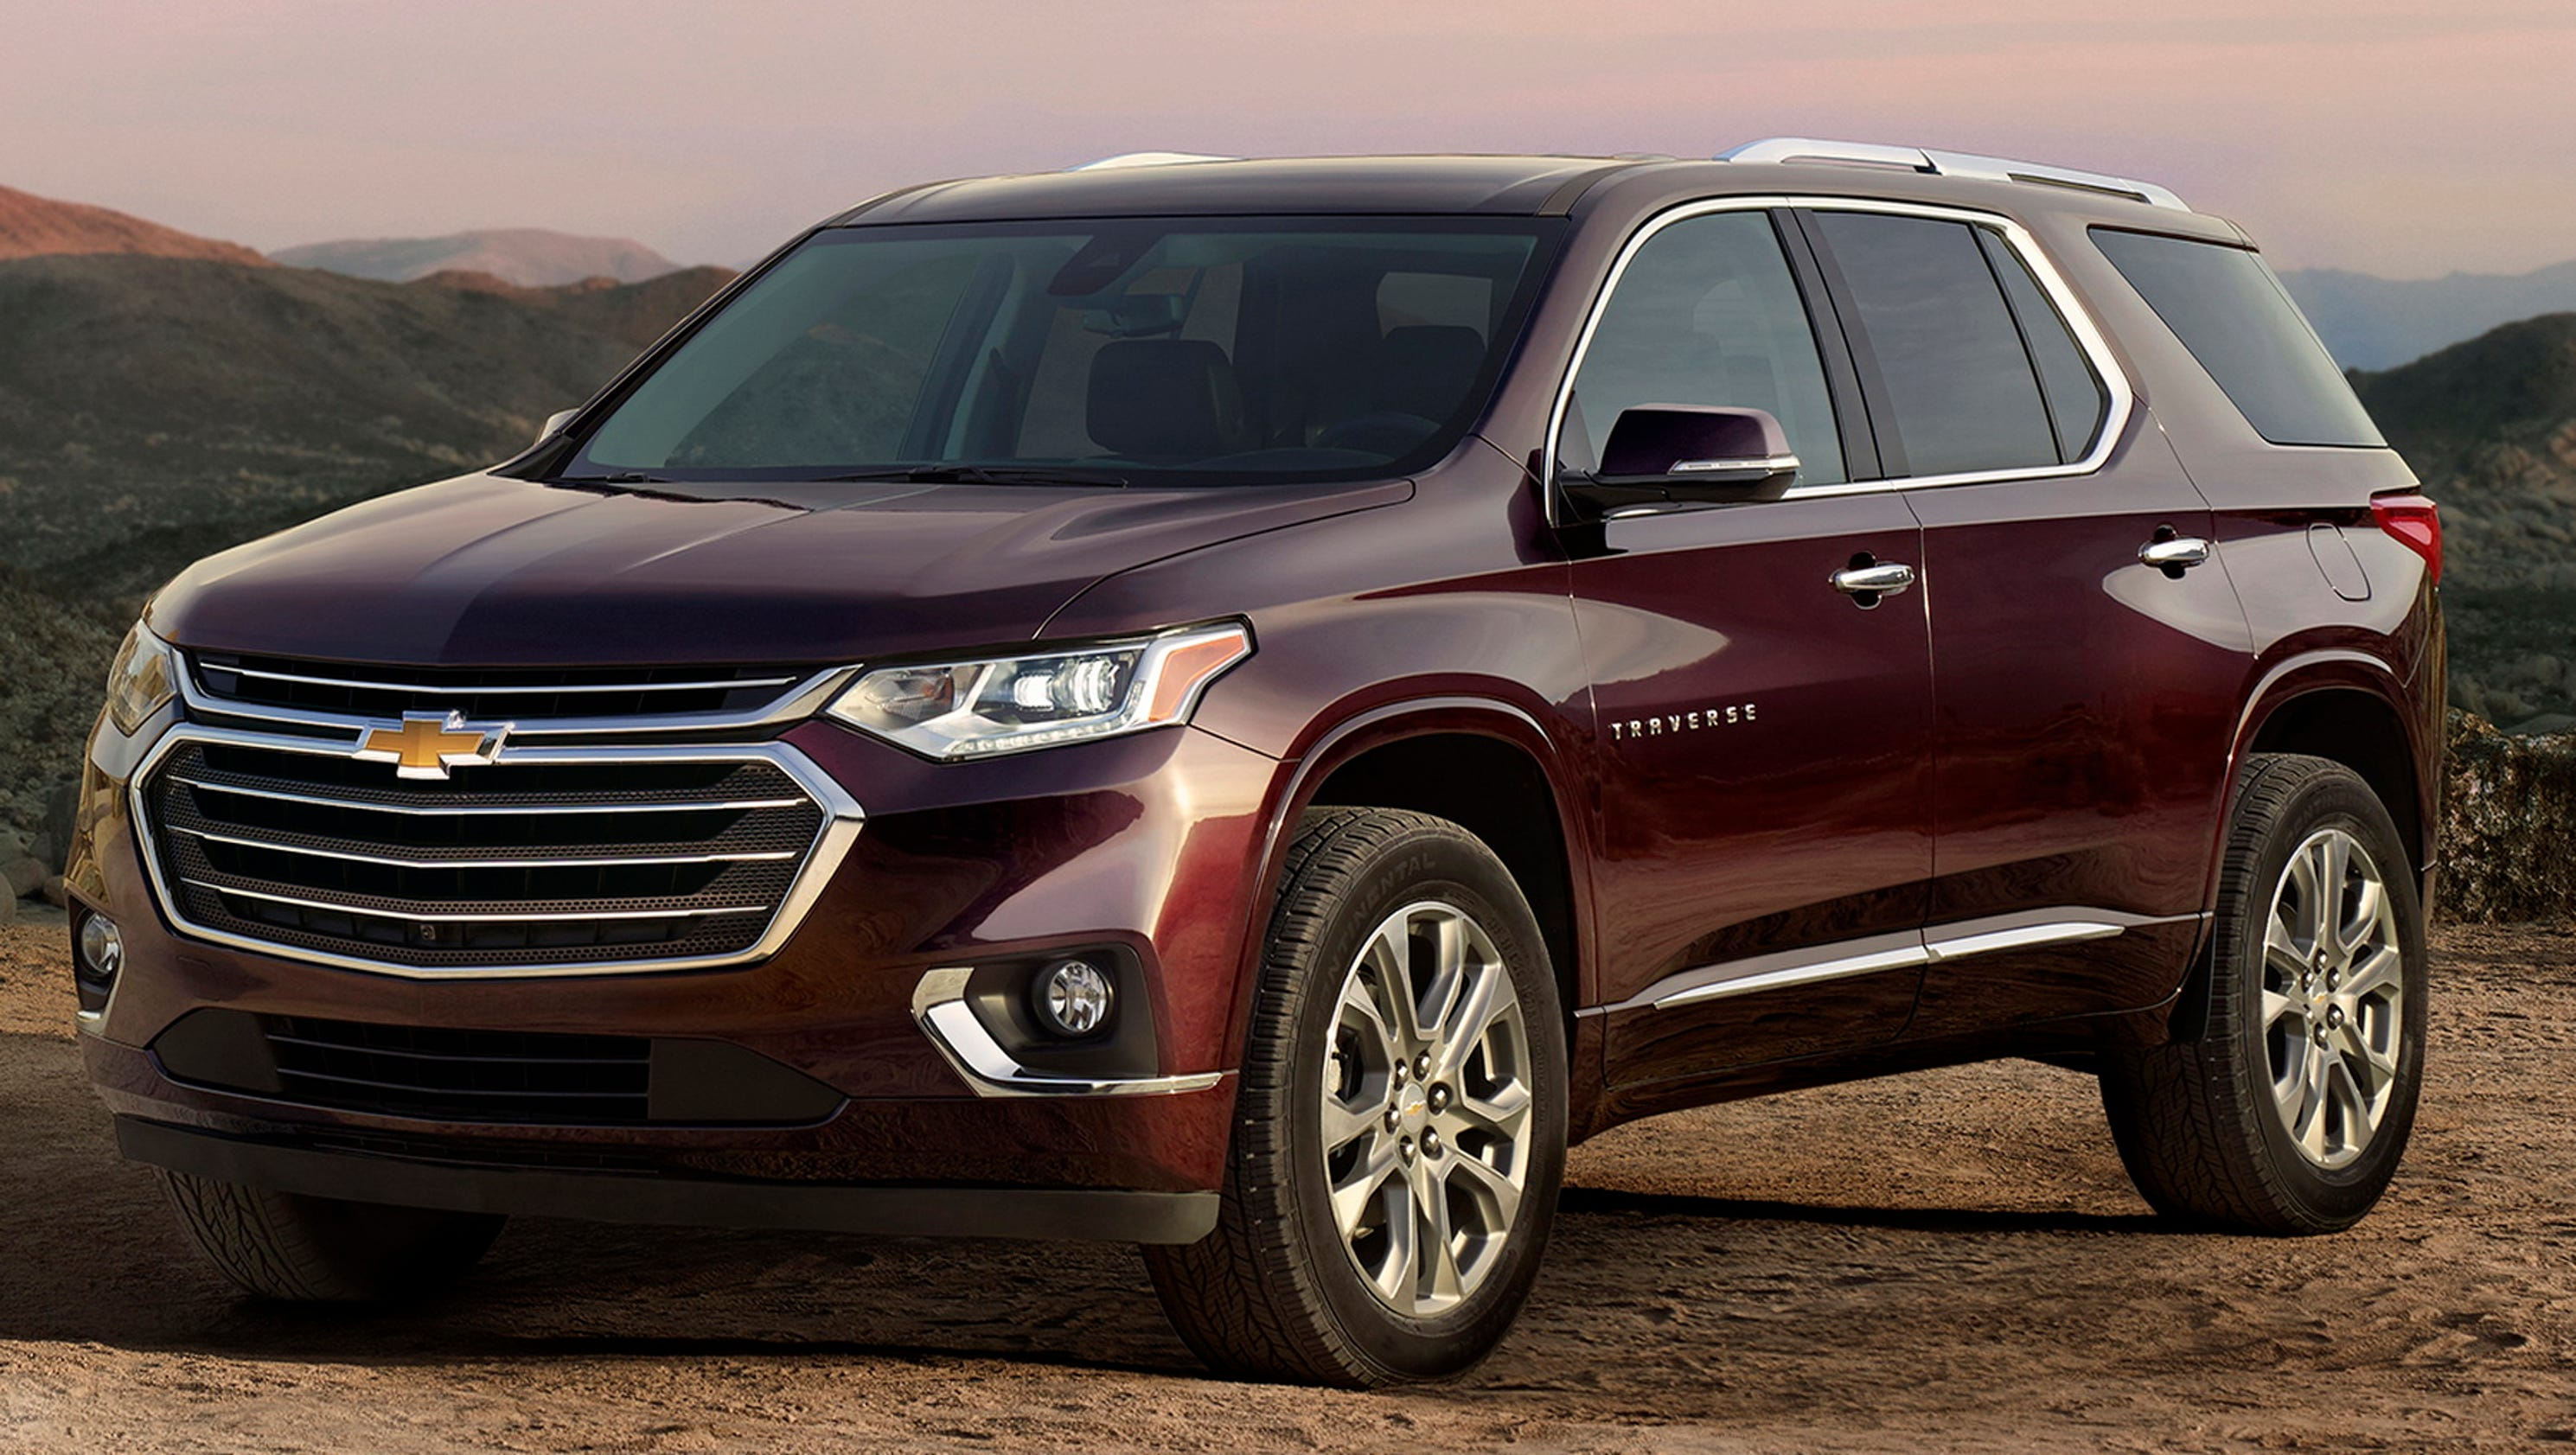 chevrolet photos tested new news a hits the crossover autoevolution trax us